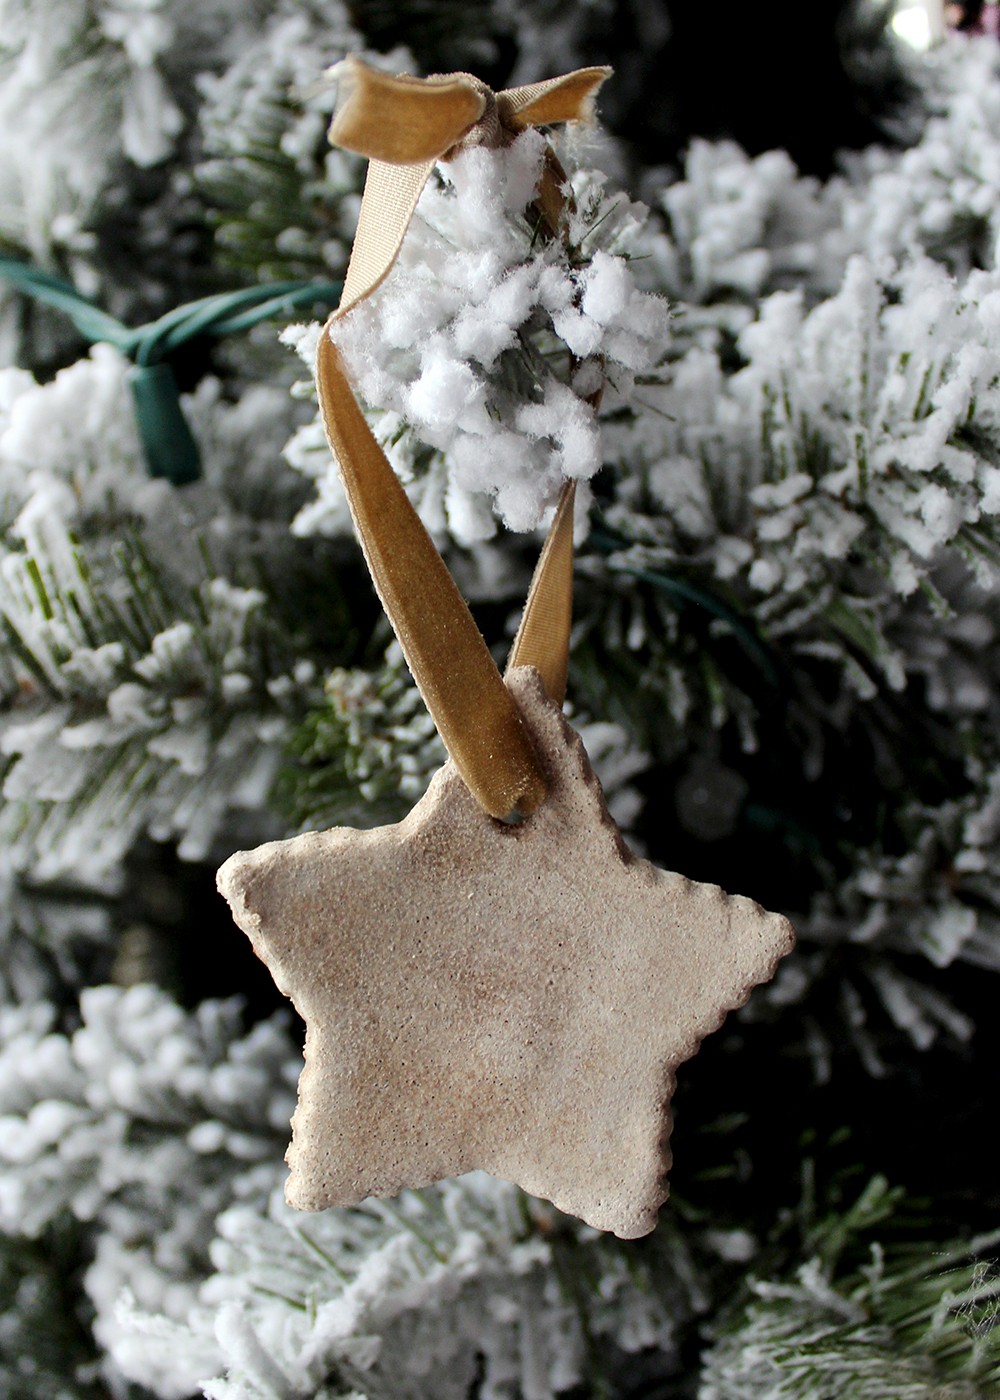 Homemade Salt Dough Ornaments With Cinnamon & Maple Ginger Insructions #handmadeChristmas #homemadeornament #budgetcraft